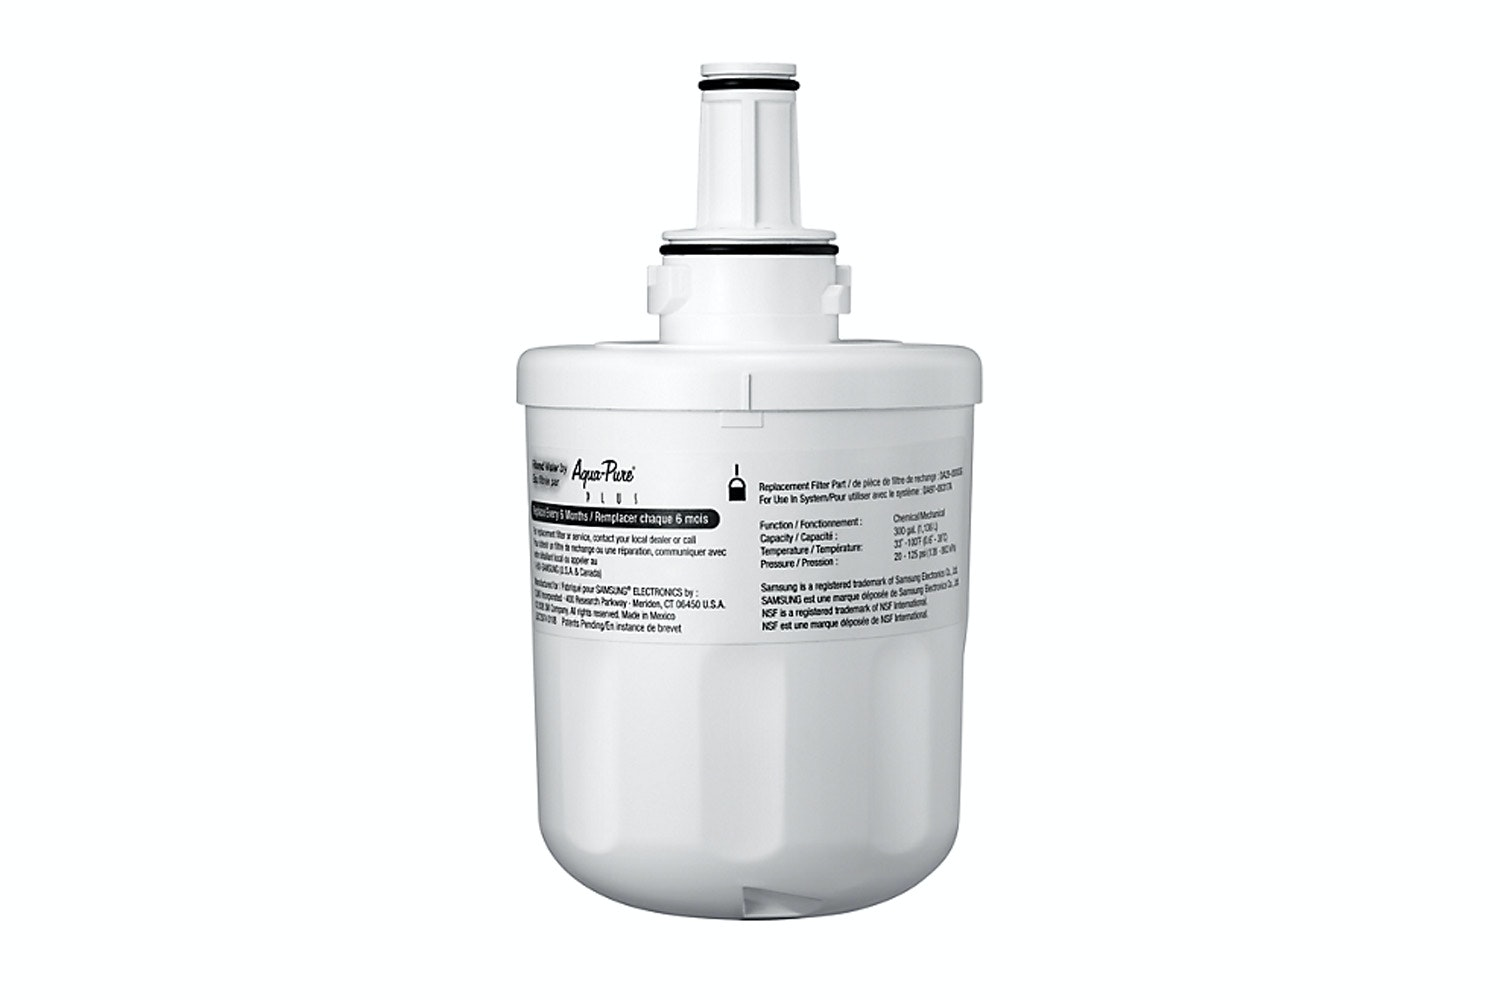 Samsung Aqua Pure Plus Refrigerator Water Filter